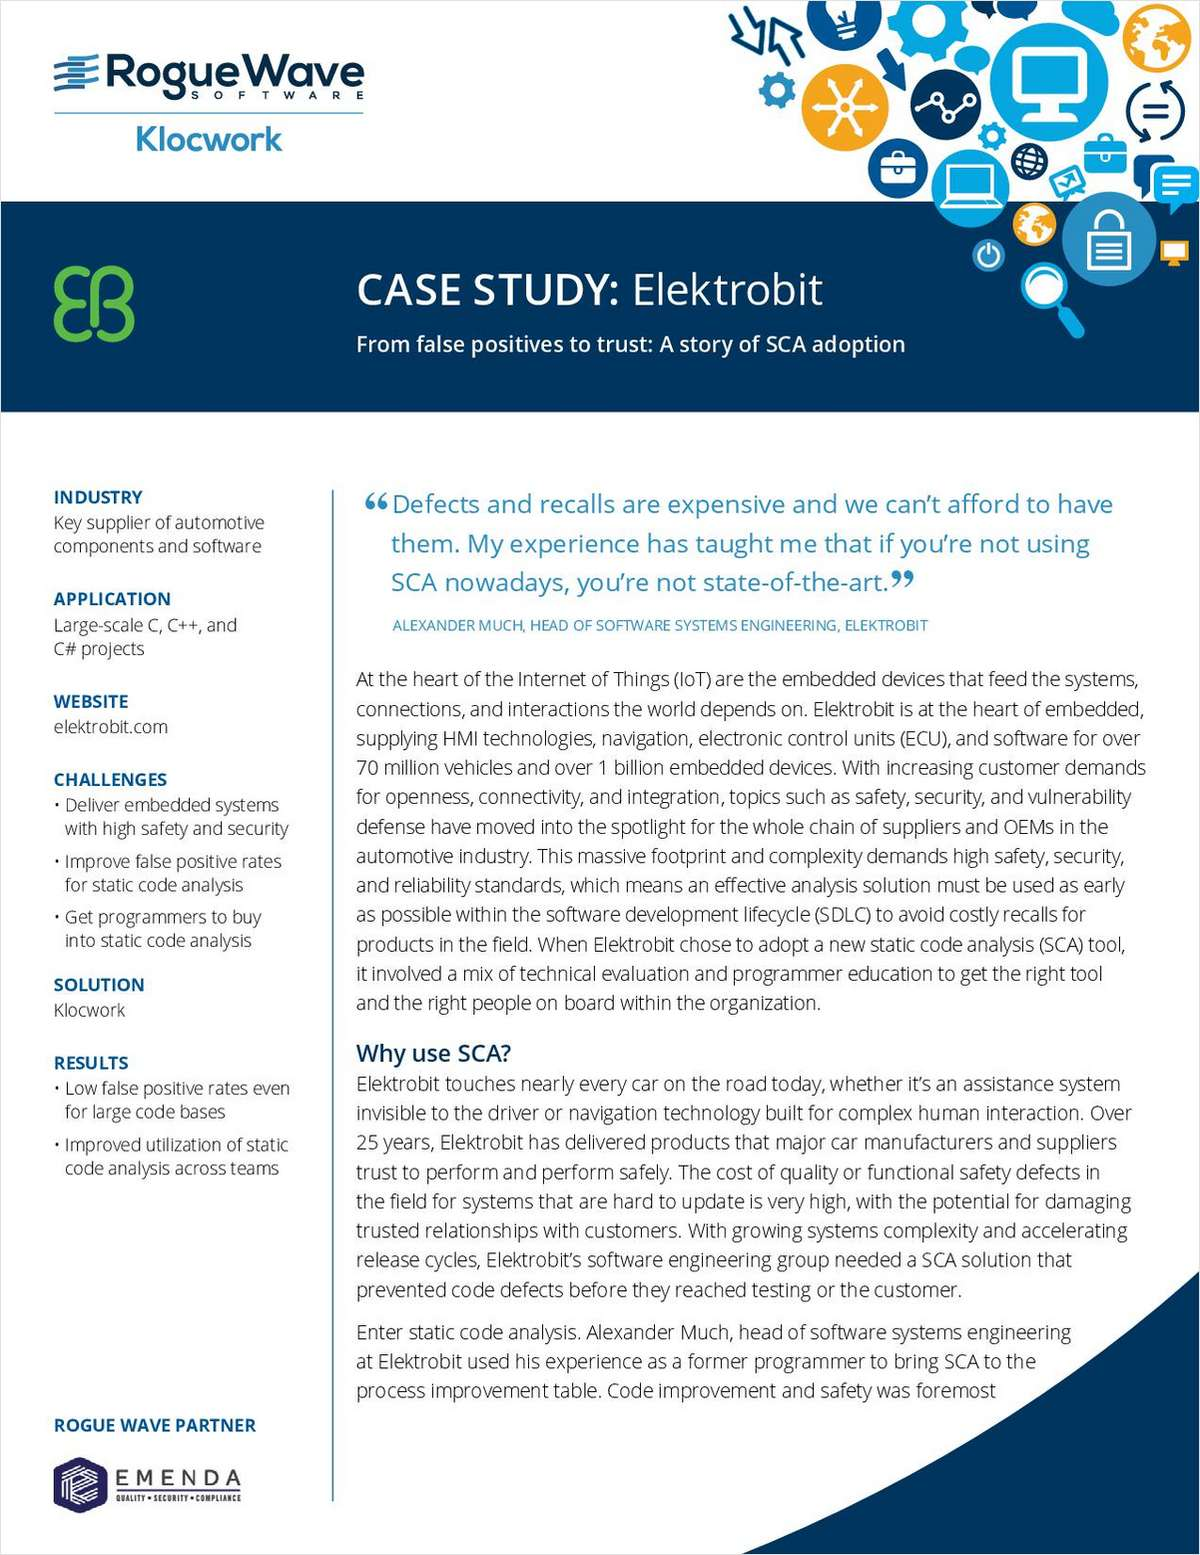 Elektrobit Case Study: A Story of Success with Static Code Analysis